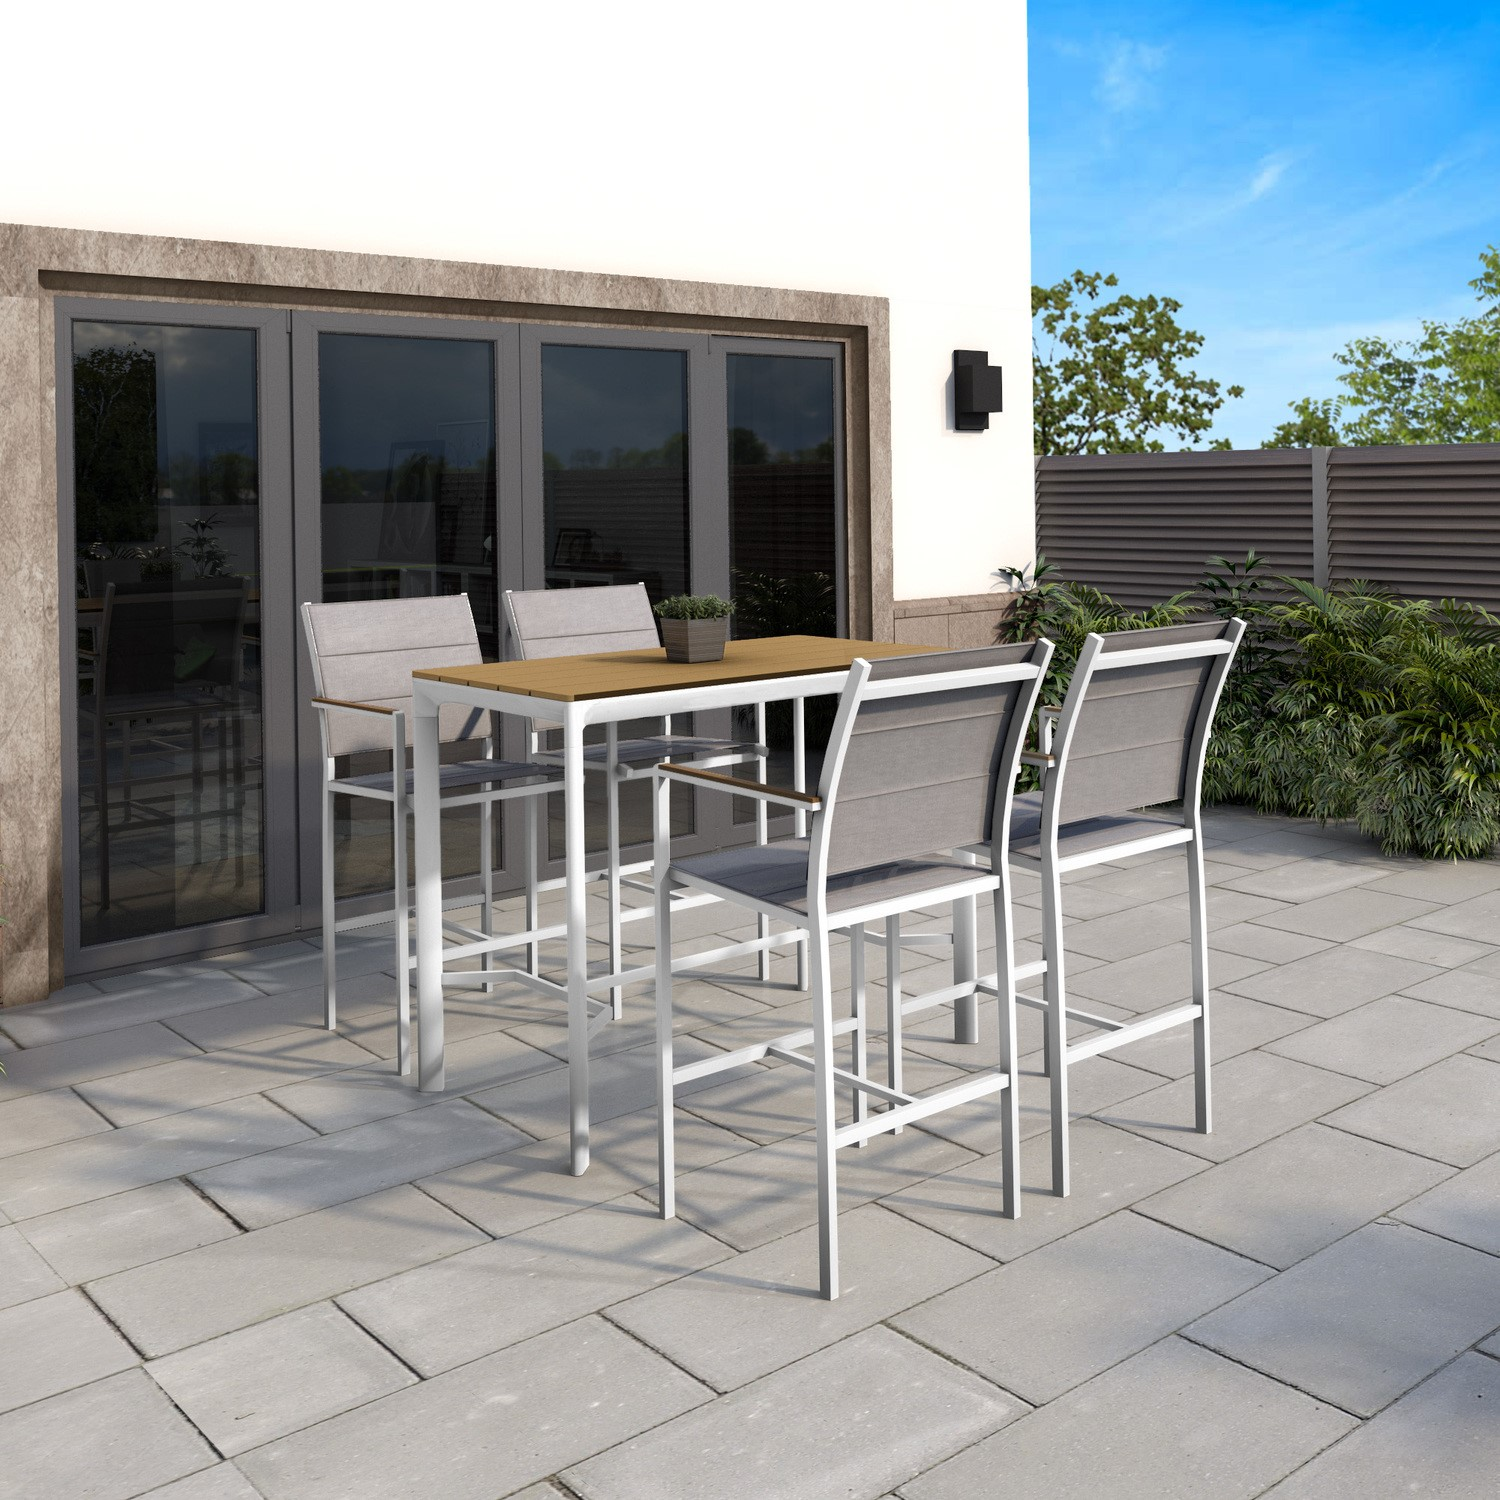 white outdoor bar set with 4 bar stools